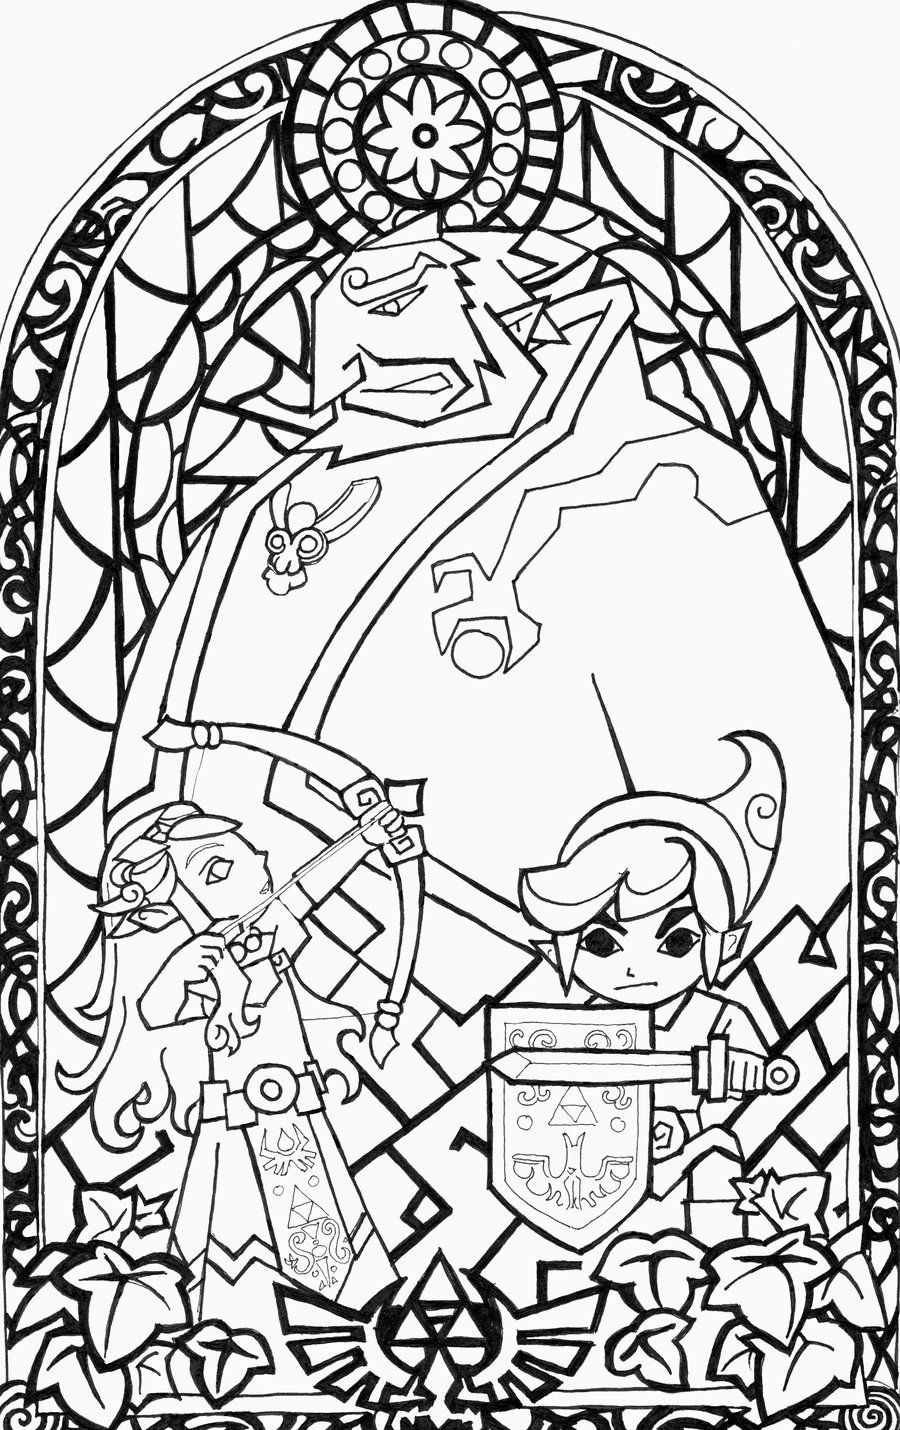 Coloring pages for zelda - Zelda Wind Breaker Big Leaf Drawing Google Search John Tattoo